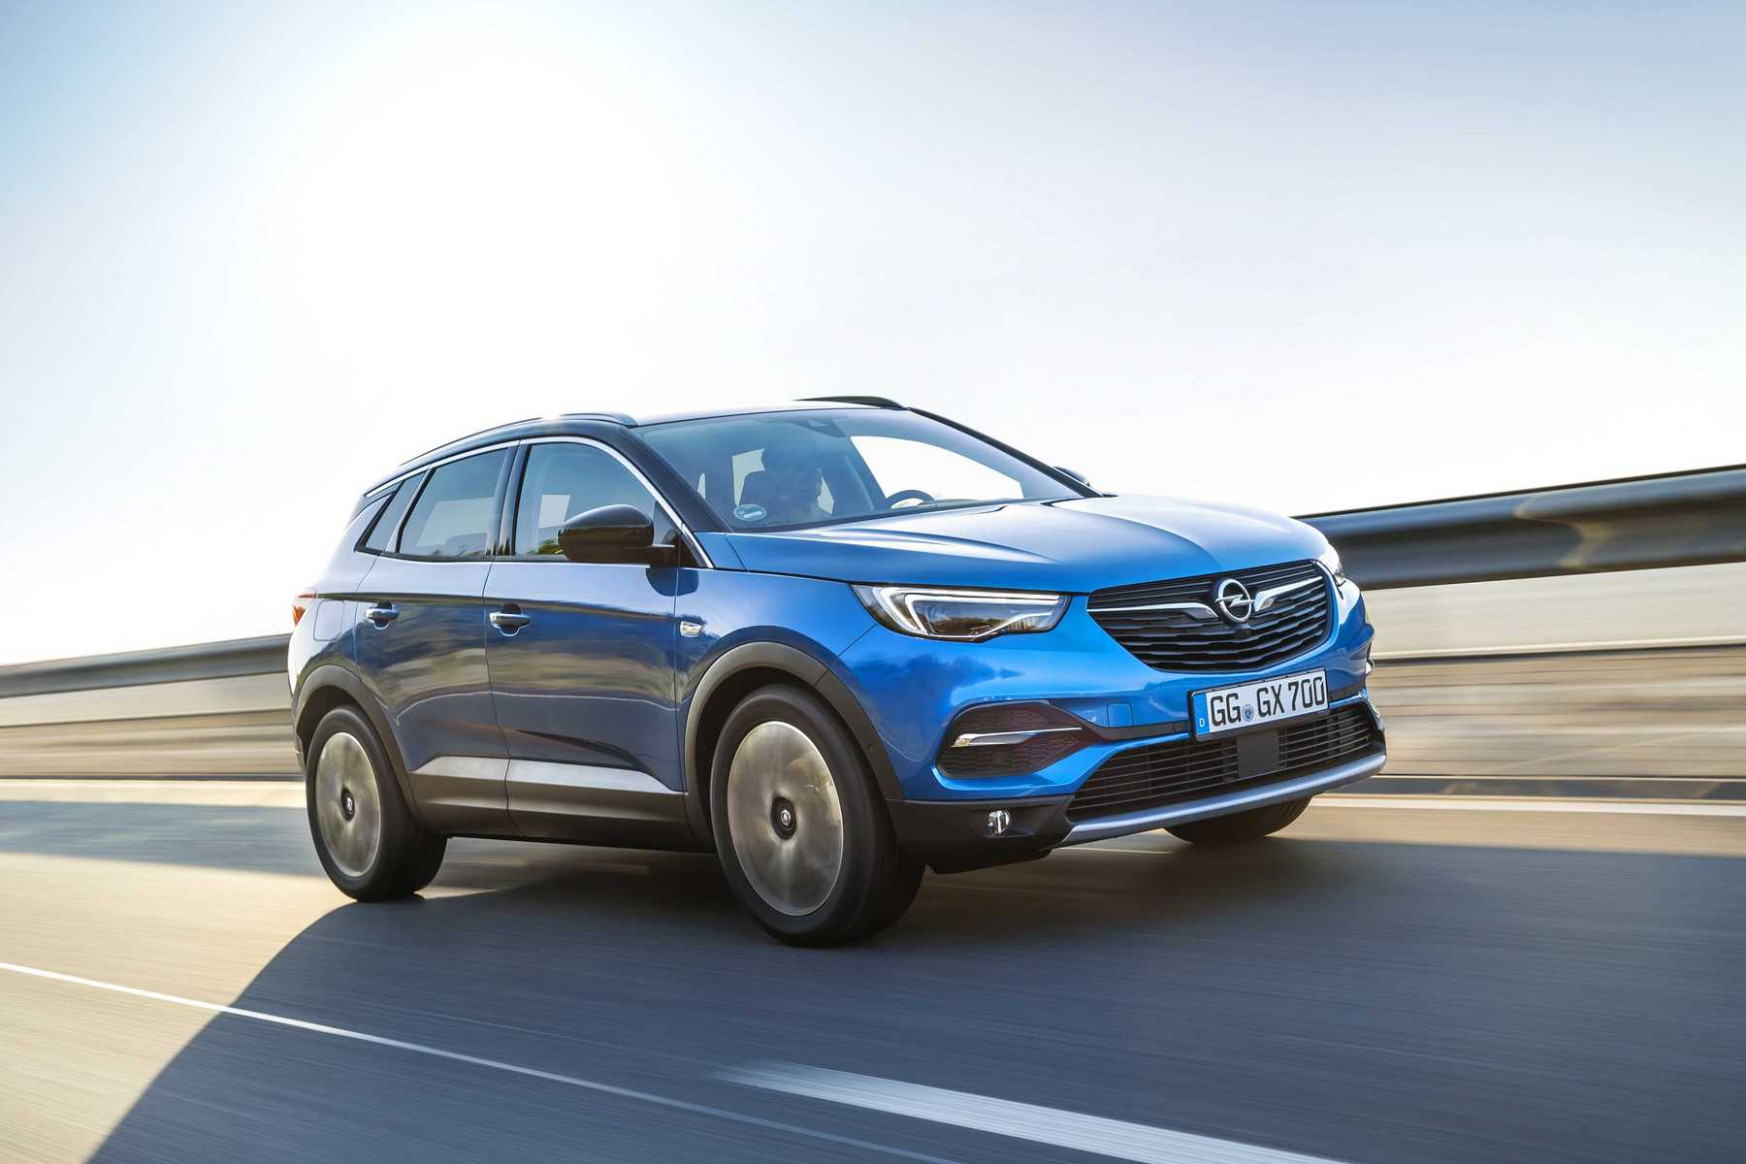 8 Opel Grandland X (Images, price, performance and specs ..